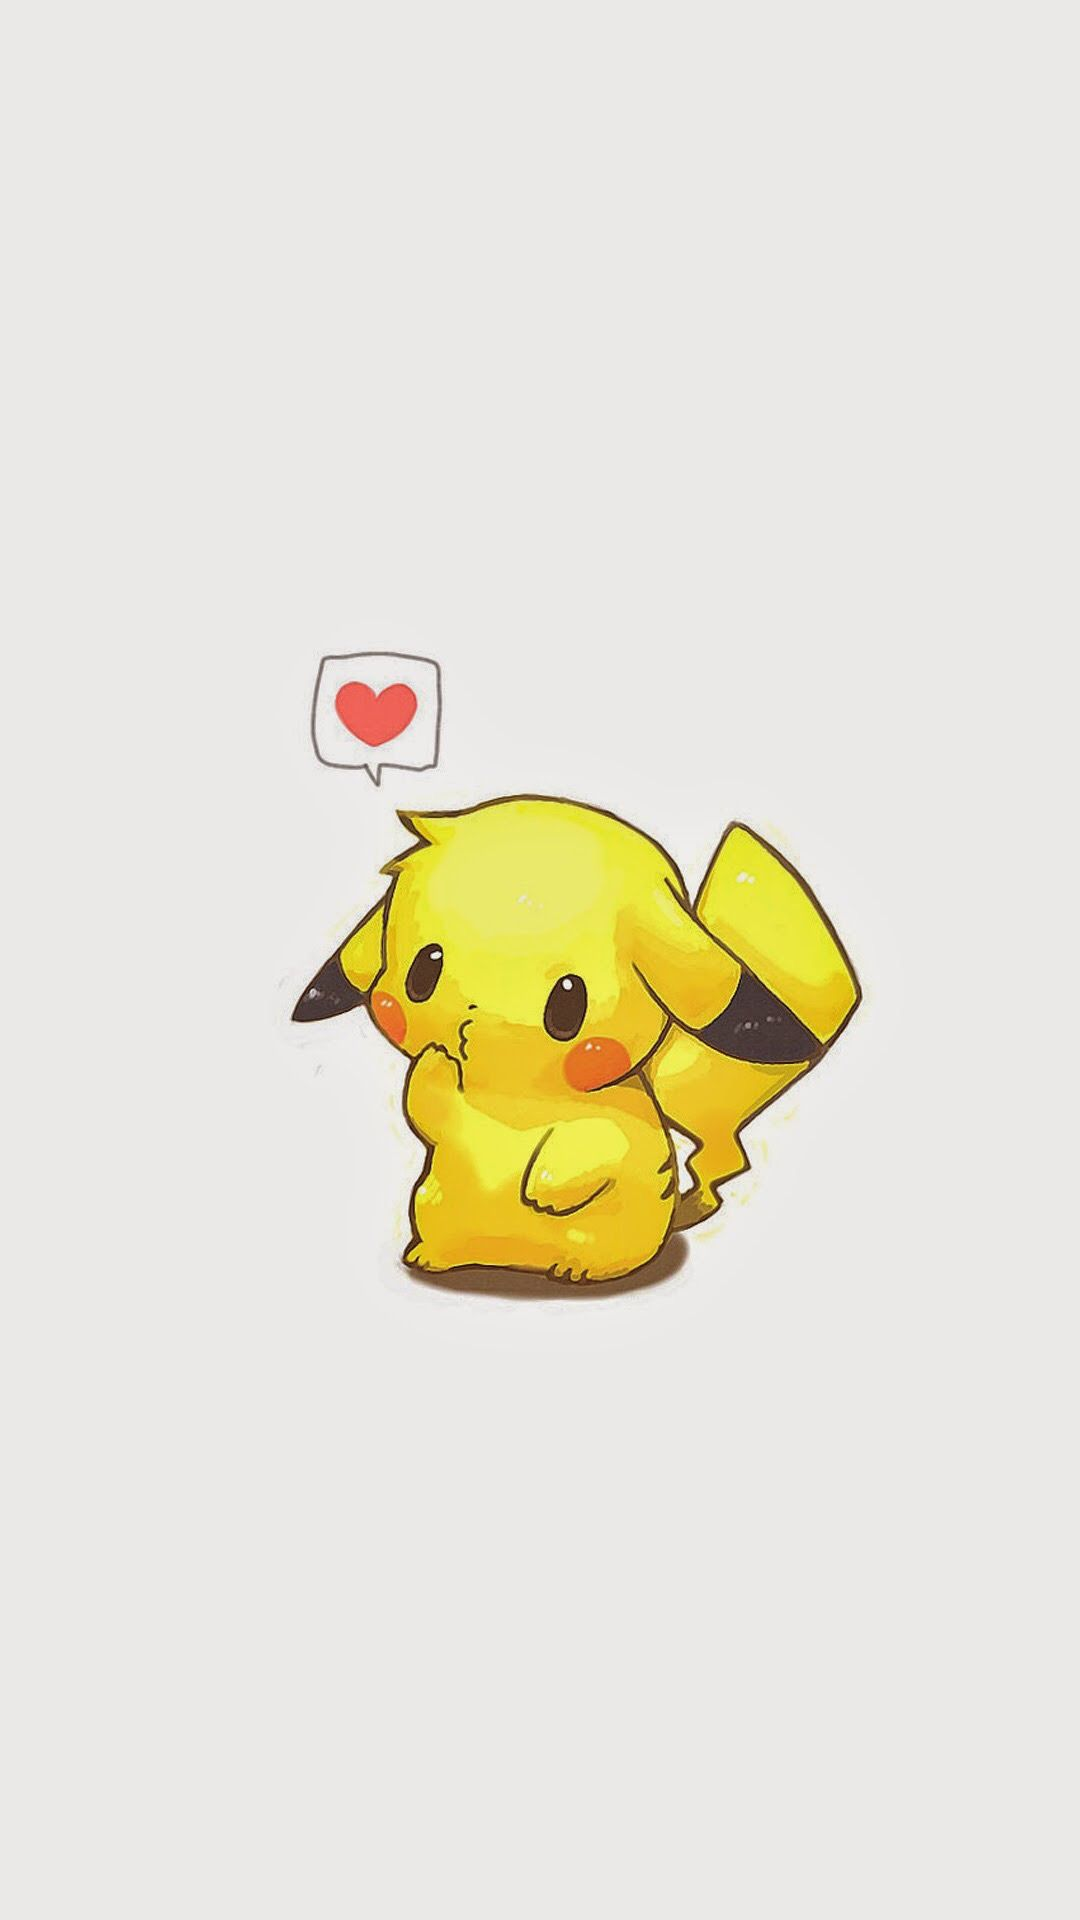 Pikachu Tap To See More Cute Pikachu Wallpapers Mobile9 Cute